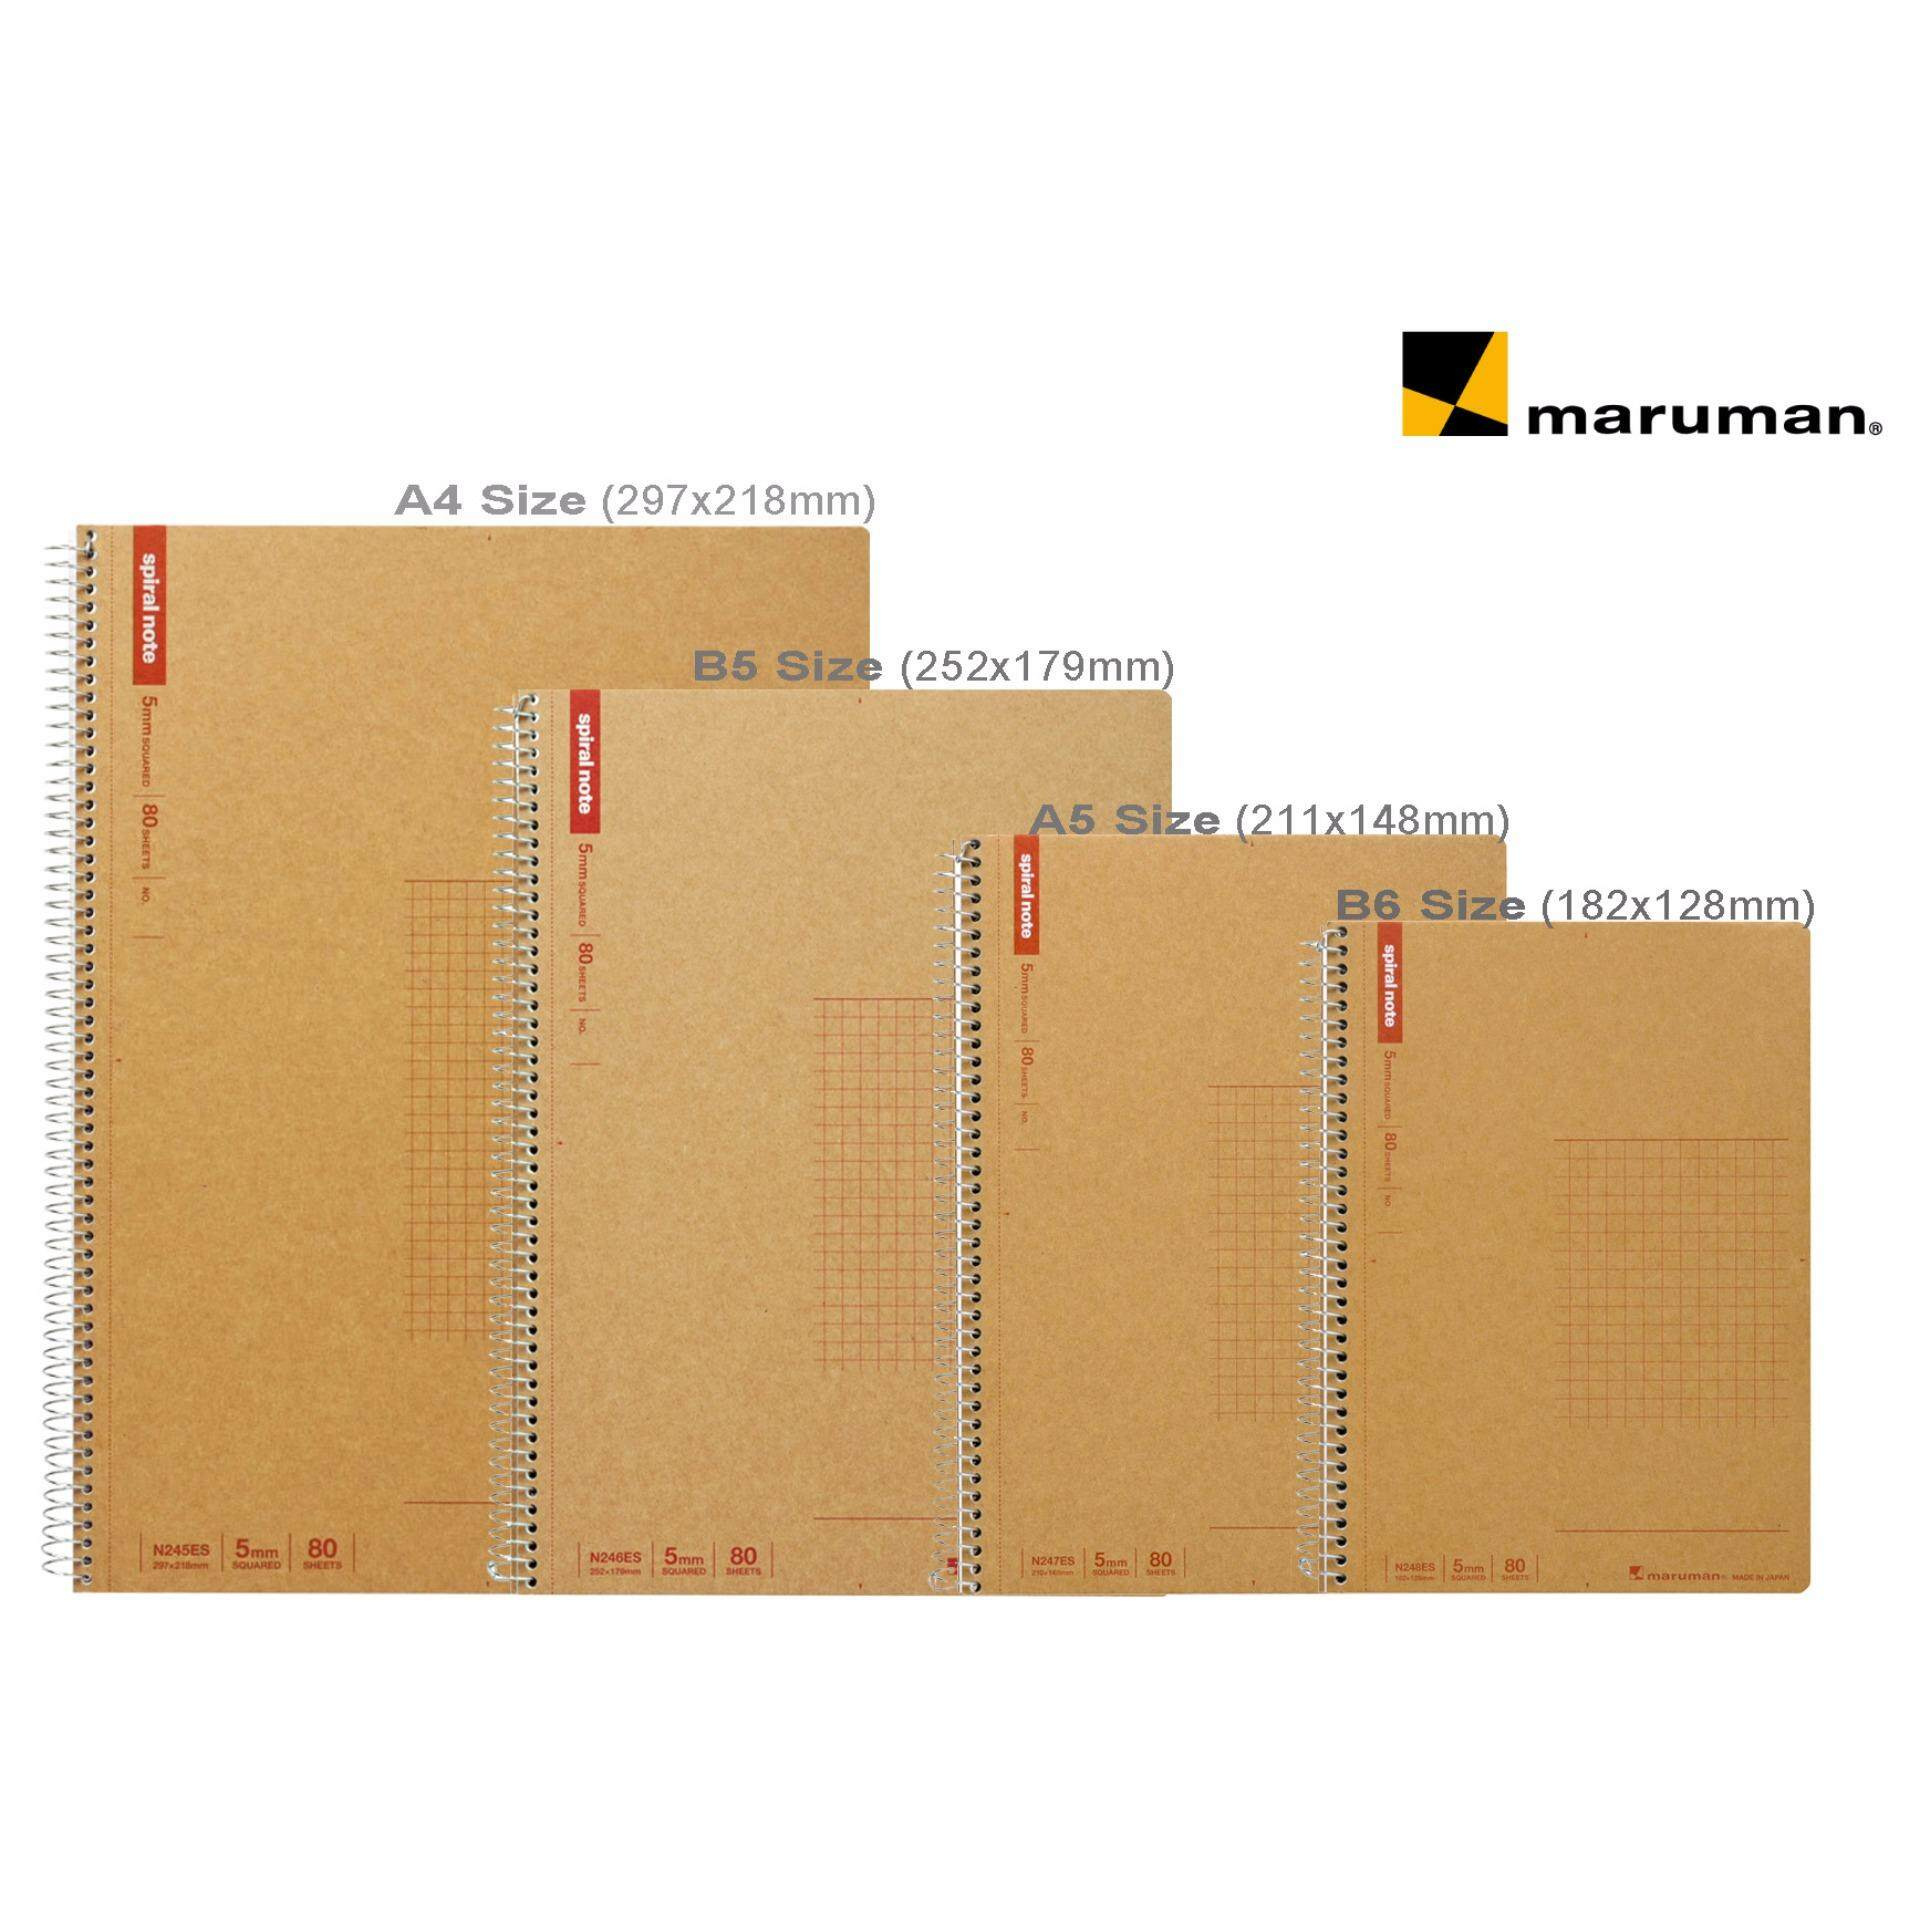 Maruman Spiral Notebook 4 in 1 Set (5mm Squared)